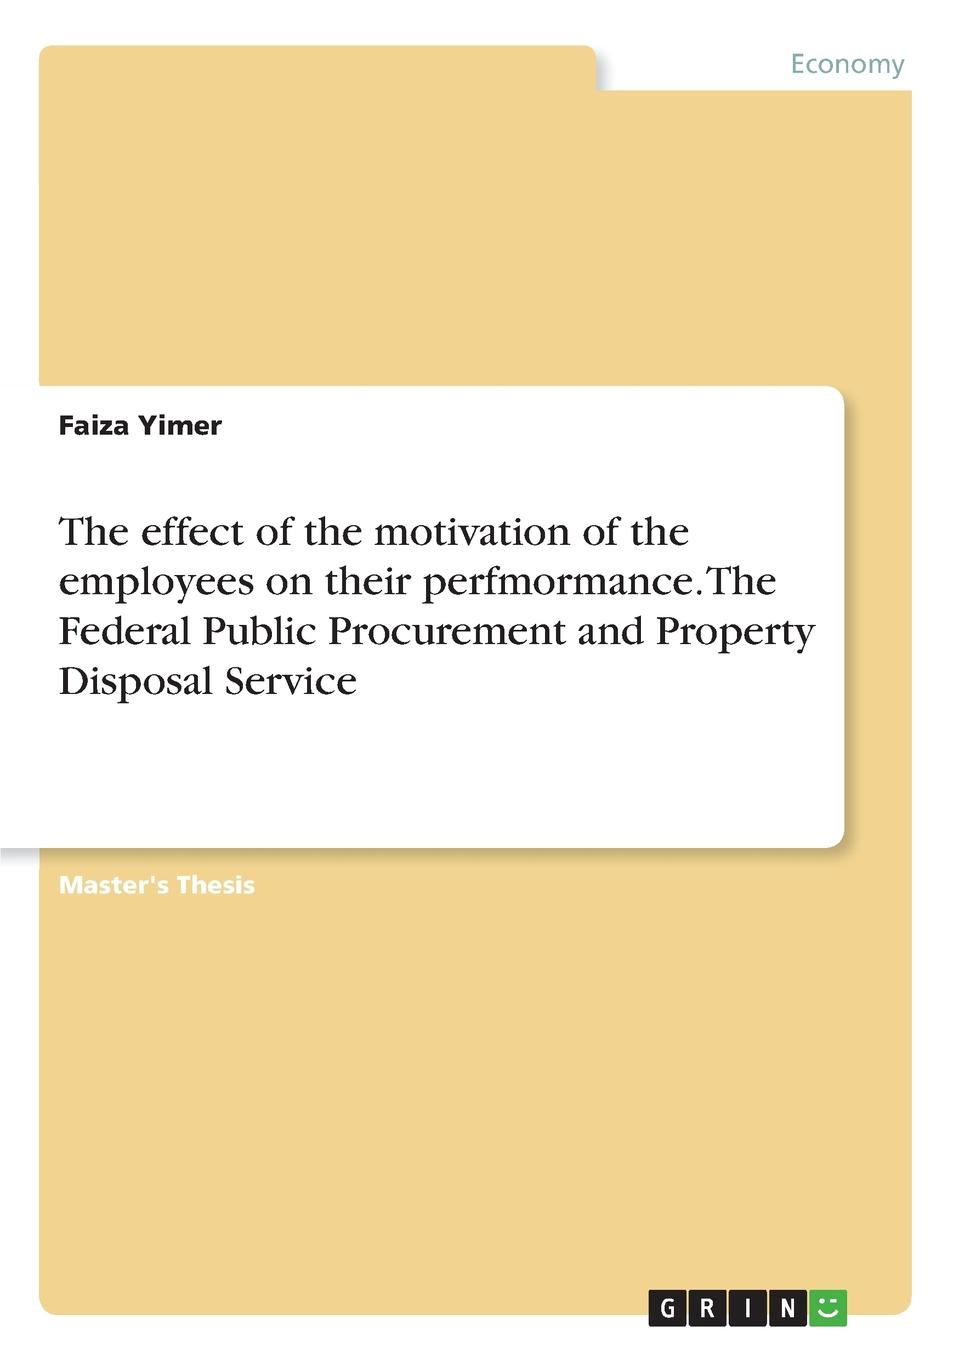 Faiza Yimer The effect of the motivation of the employees on their perfmormance. The Federal Public Procurement and Property Disposal Service motivation and action